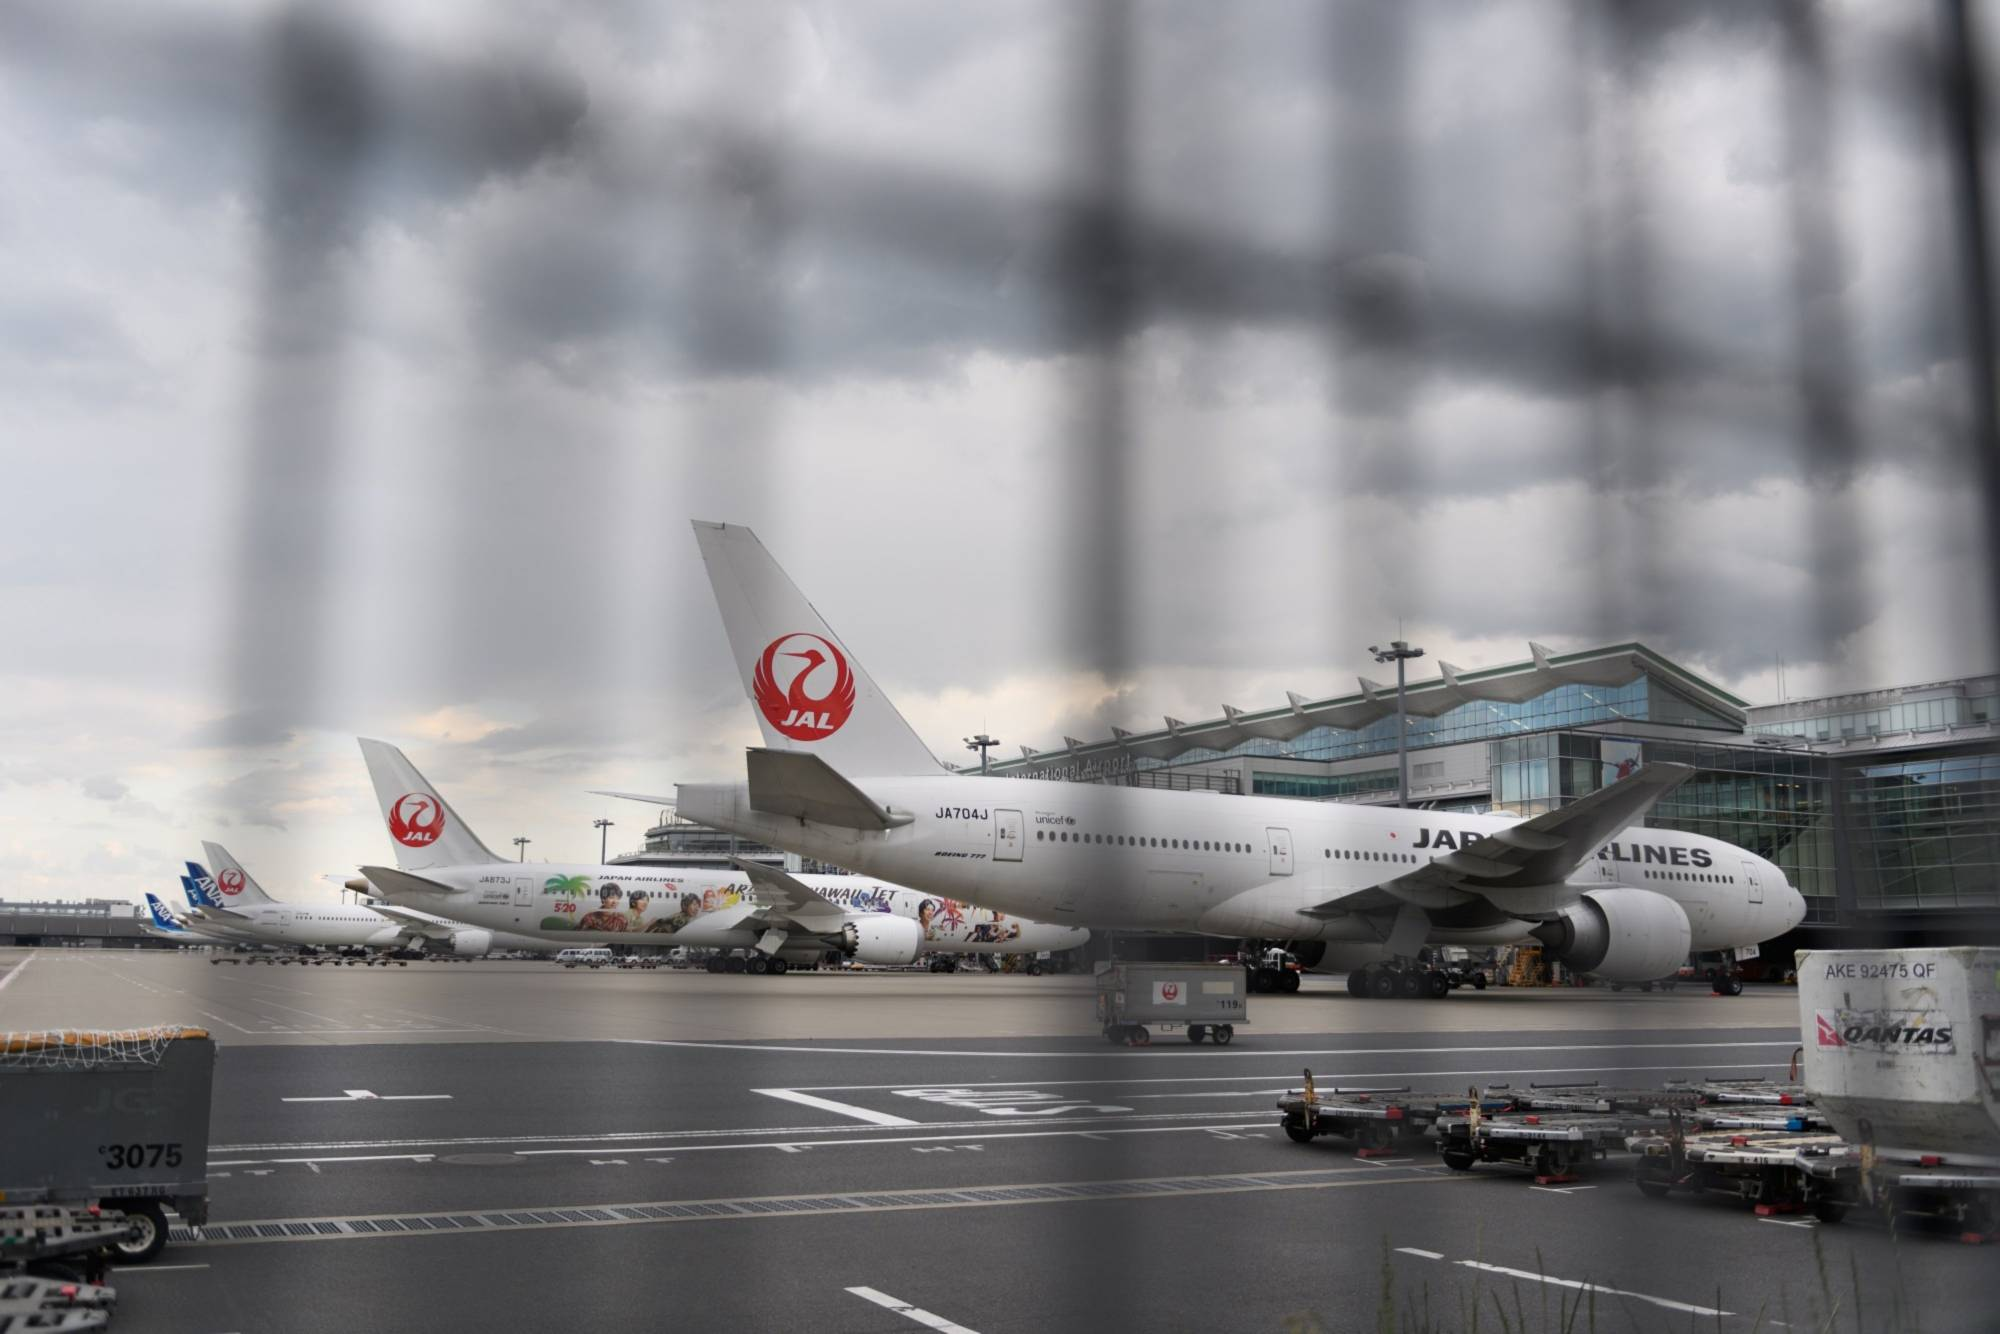 Japan Airlines Co. projects a net loss of between ¥200 billion and ¥250 billion for this fiscal year, turning unprofitable for the first time since relisting on the Tokyo stock market in 2012, according to sources. | BLOOMBERG